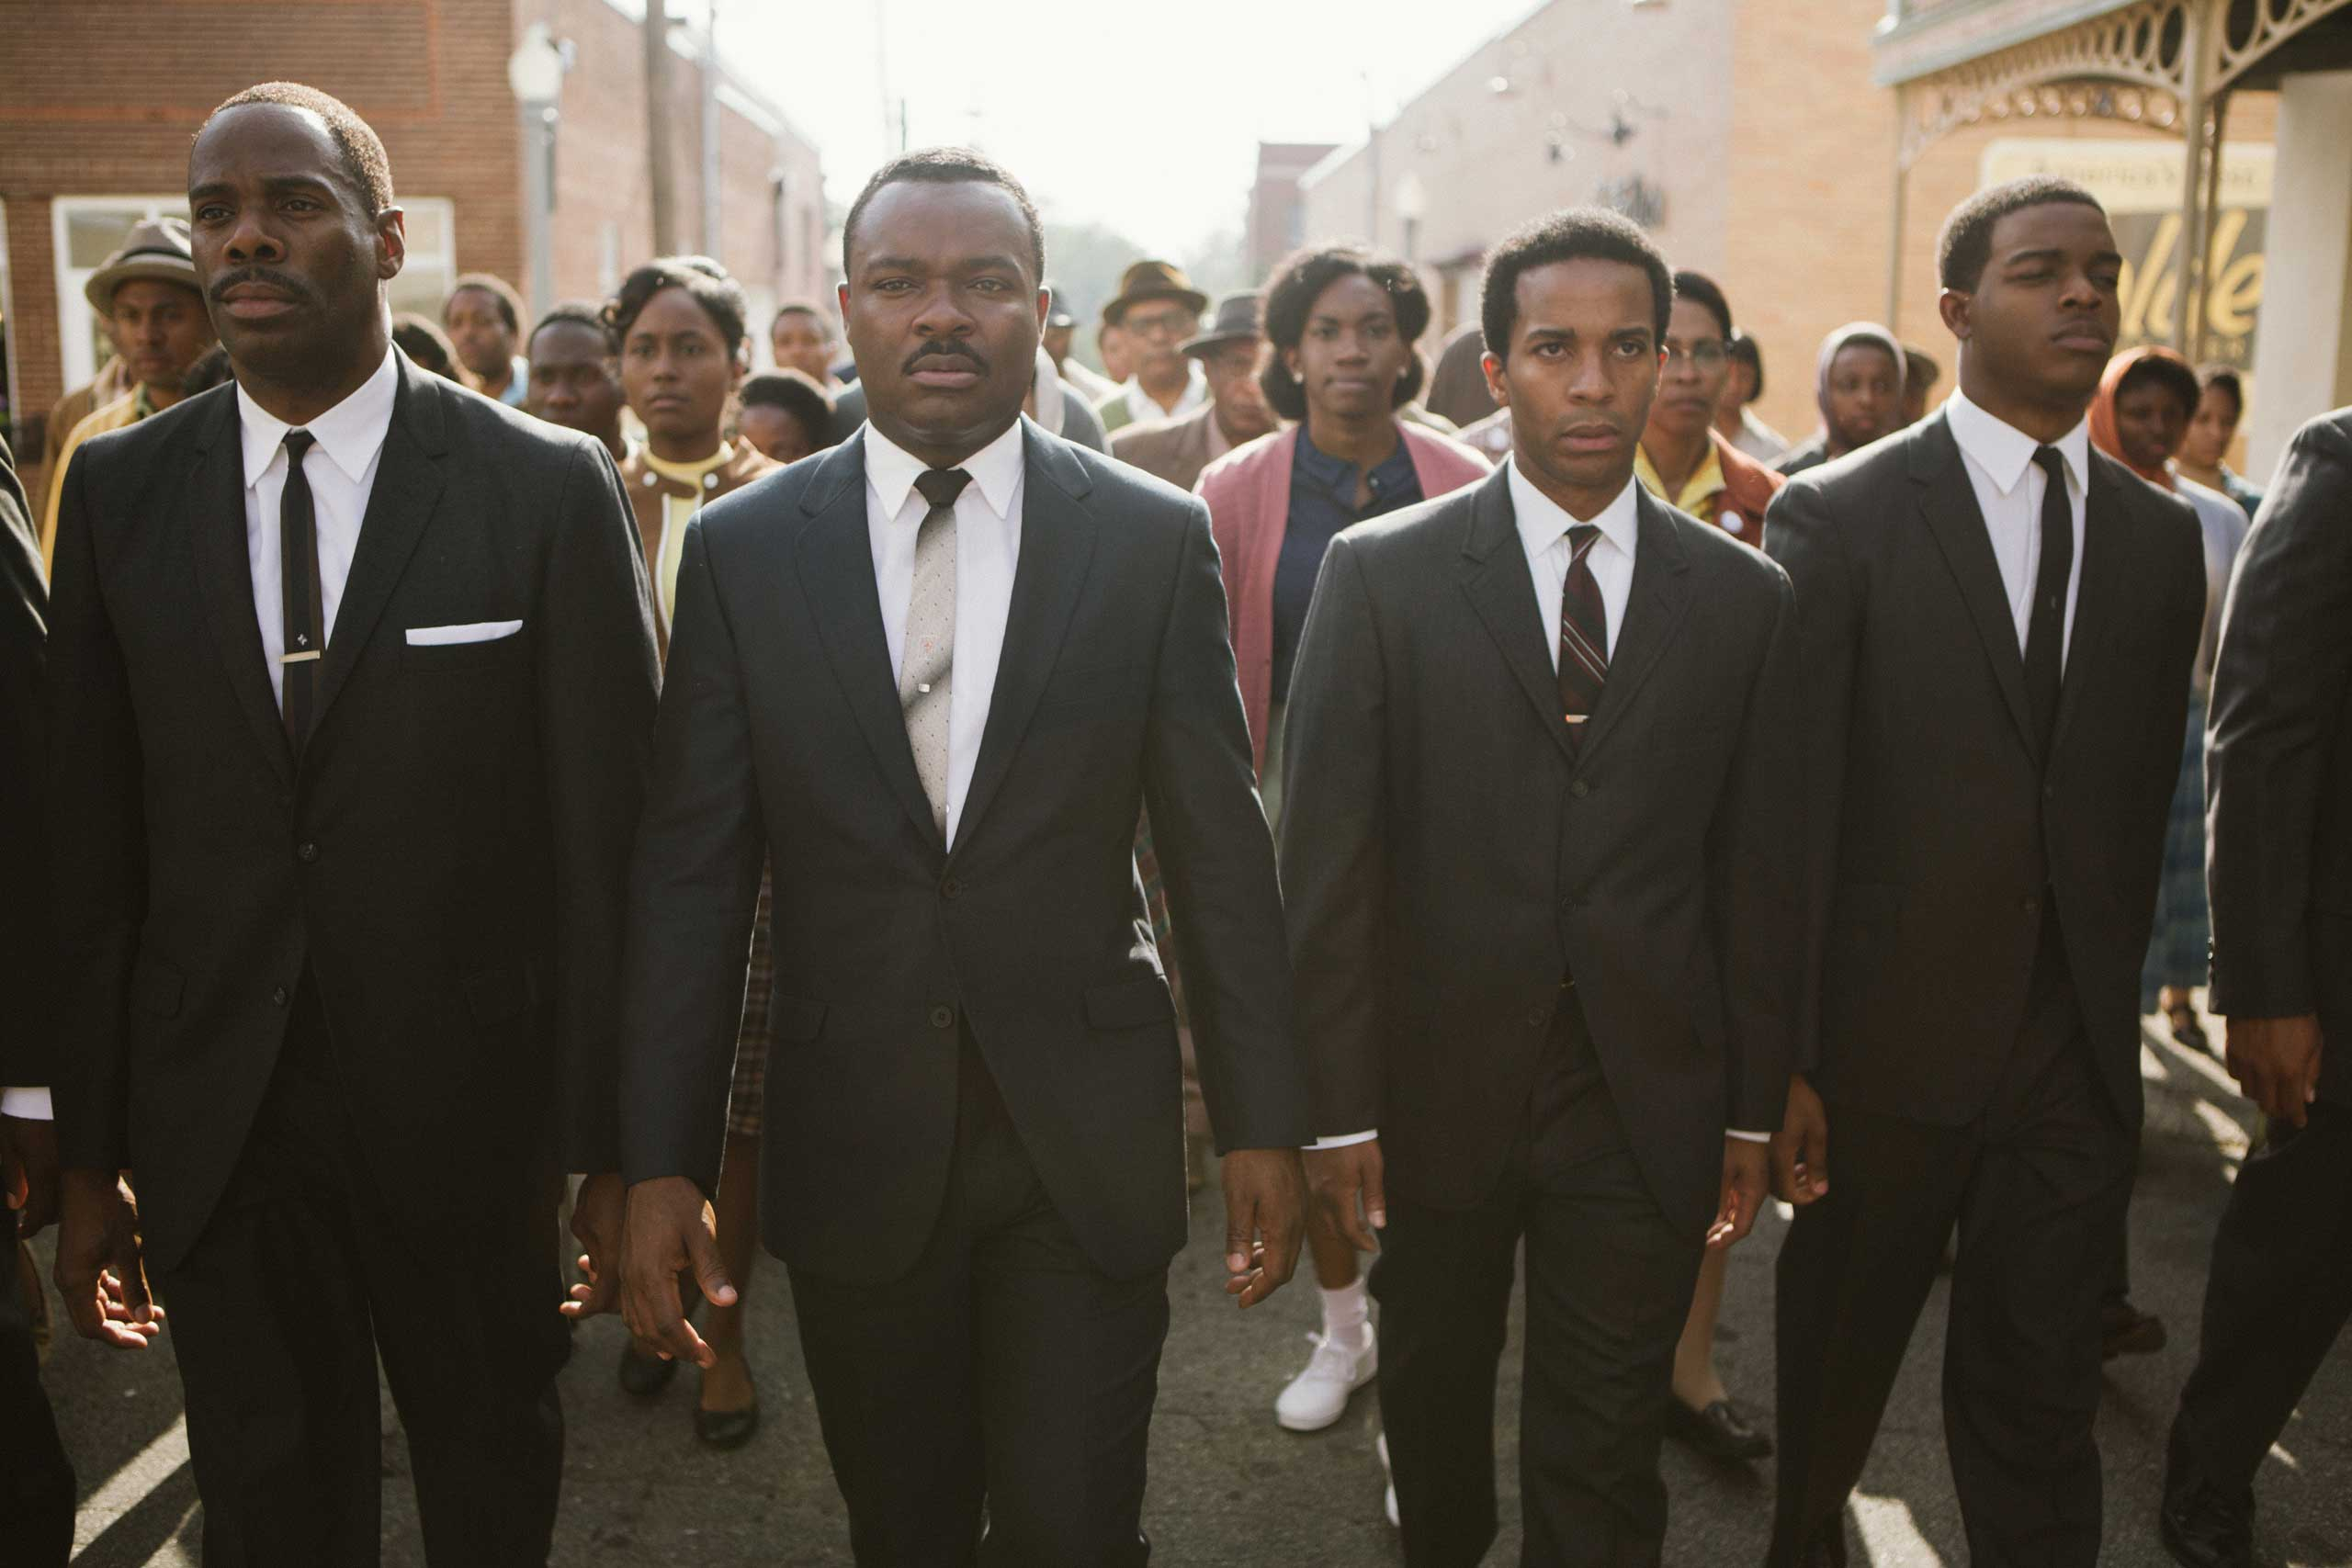 Left to right, foreground: Colman Domingo plays Ralph Abernathy, David Oyelowo plays Dr. Martin Luther King, Jr., André Holland plays Andrew Young, and Stephan James plays John Lewis in Selma.